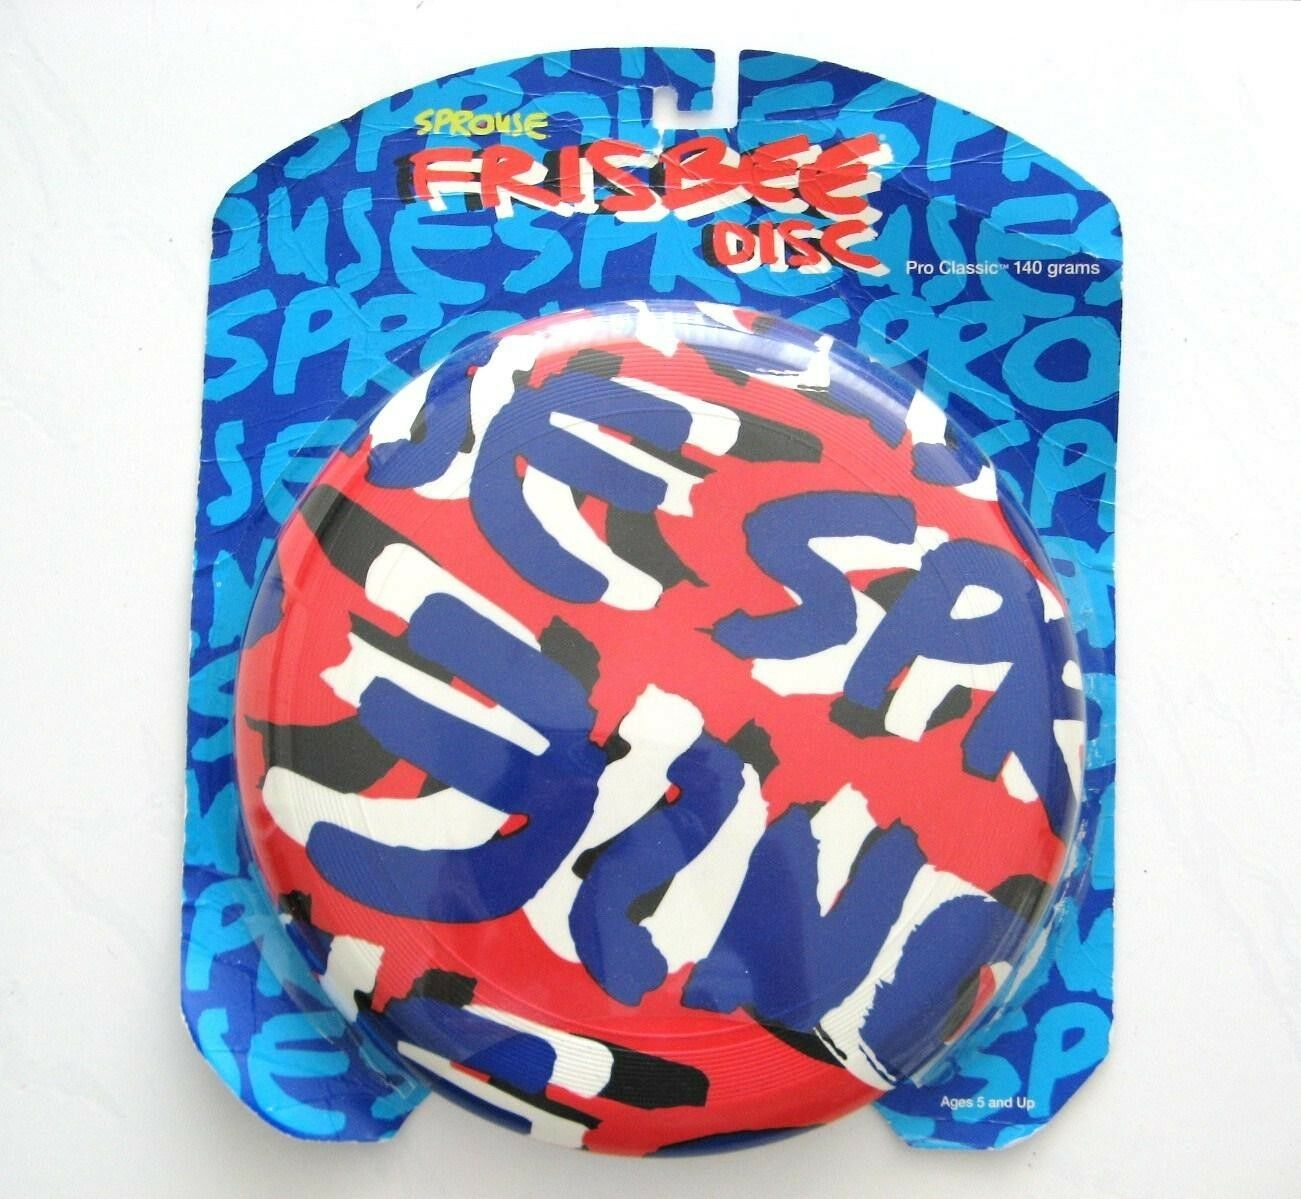 STEPHEN SPROUSE FRISBEE DISC PRO CLASSIC 140 GRAMS 2002 TARGET COLLECTION 5+